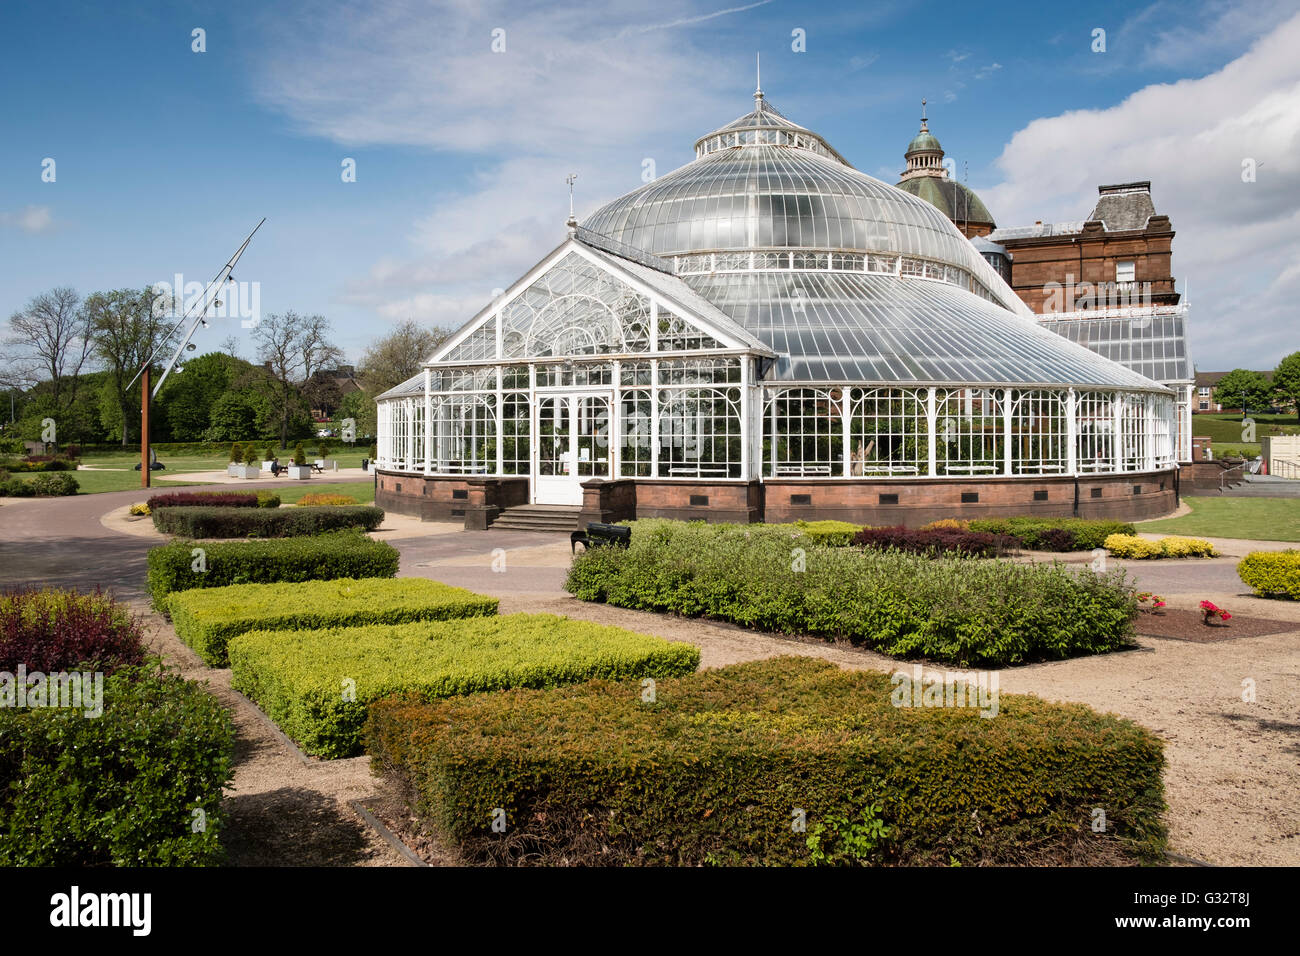 winter gardens glasshouse at people u0027s palace museum on glasgow